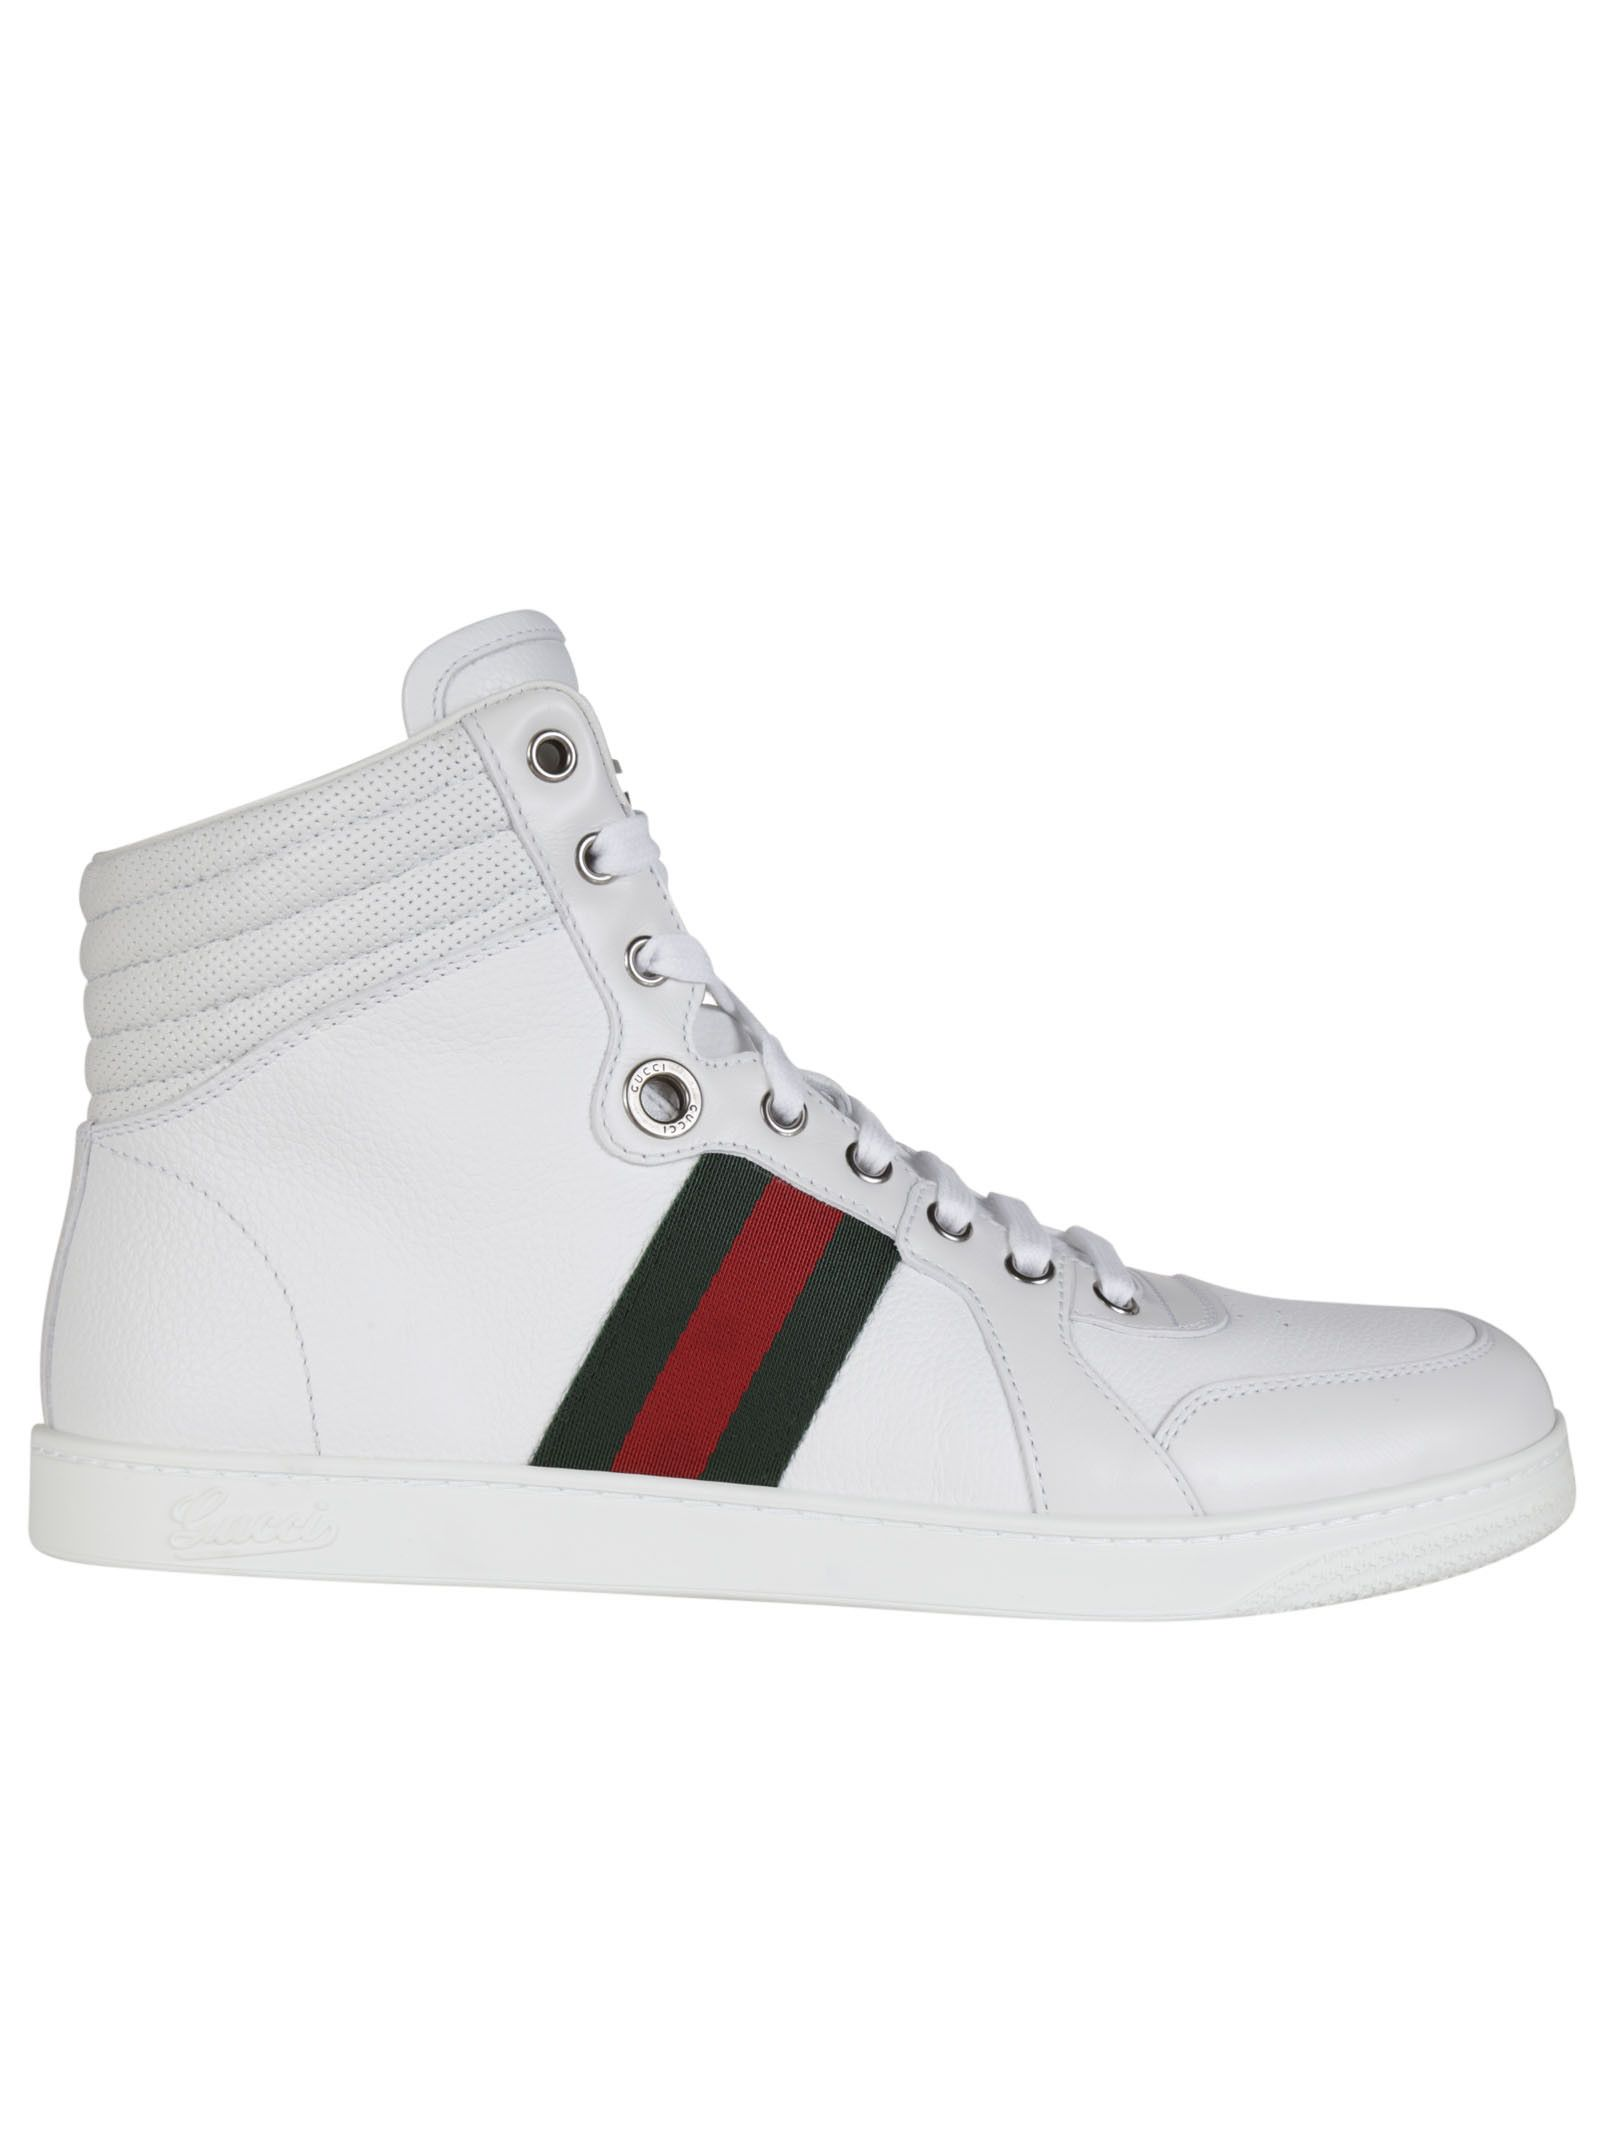 gucci shoes black and white. best price on the market: gucci guccissima leather high-top sneakers shoes black and white